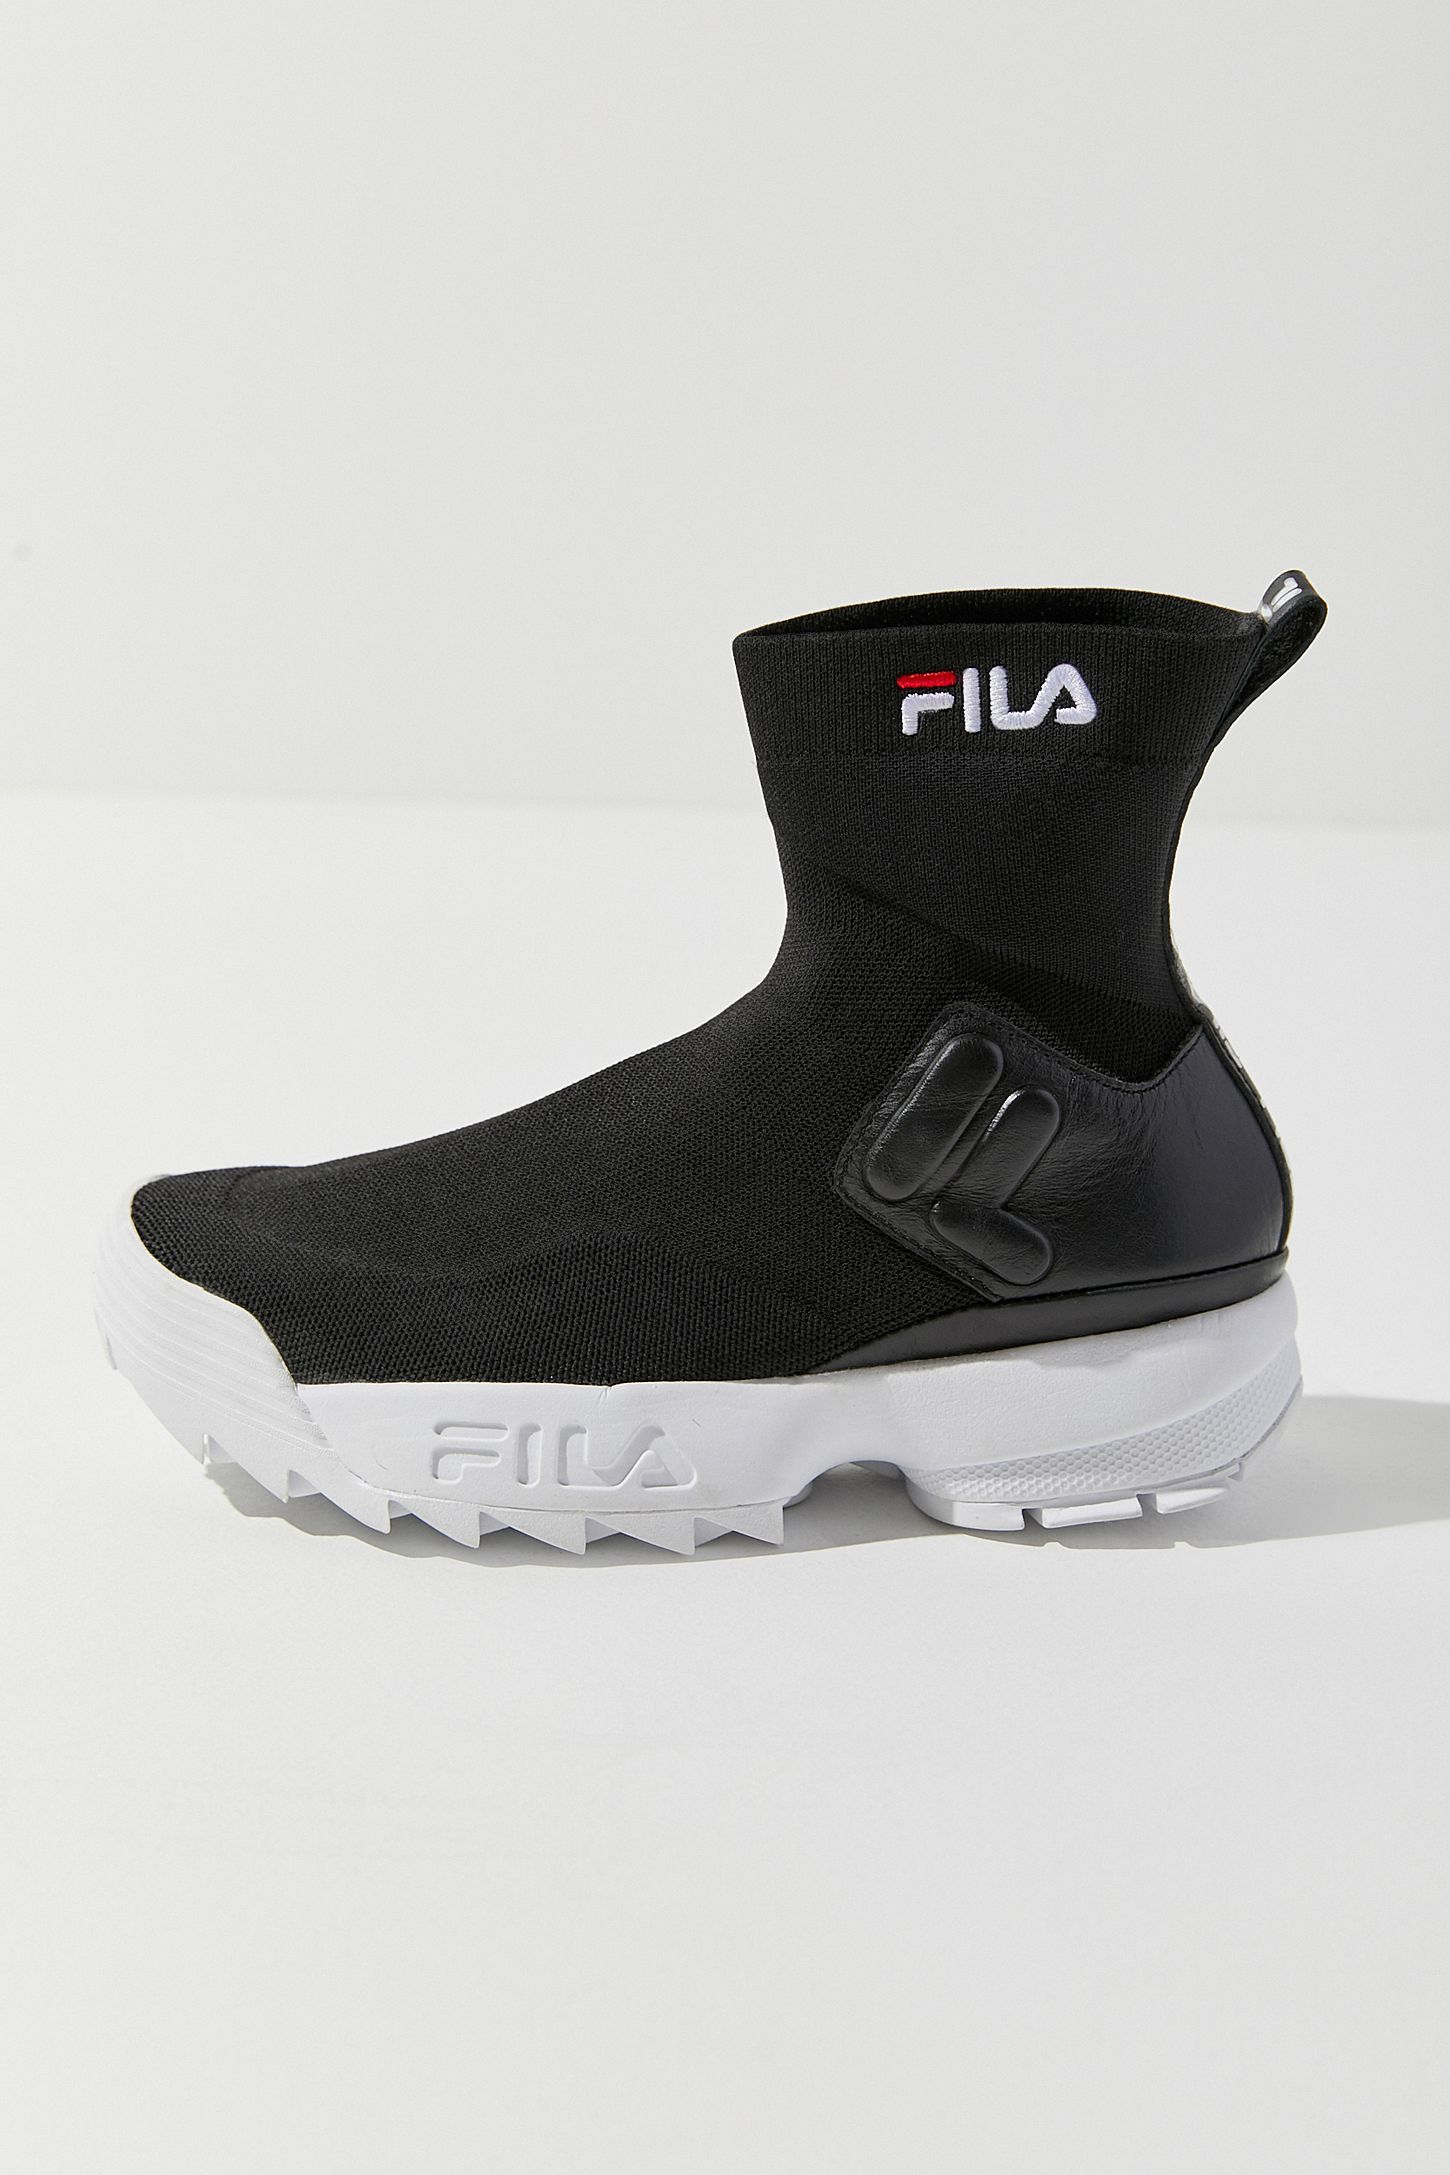 0d6e14b3cc FILA UO Exclusive Disruptor Sock Boot in 2019 | Let's Go Get Some ...